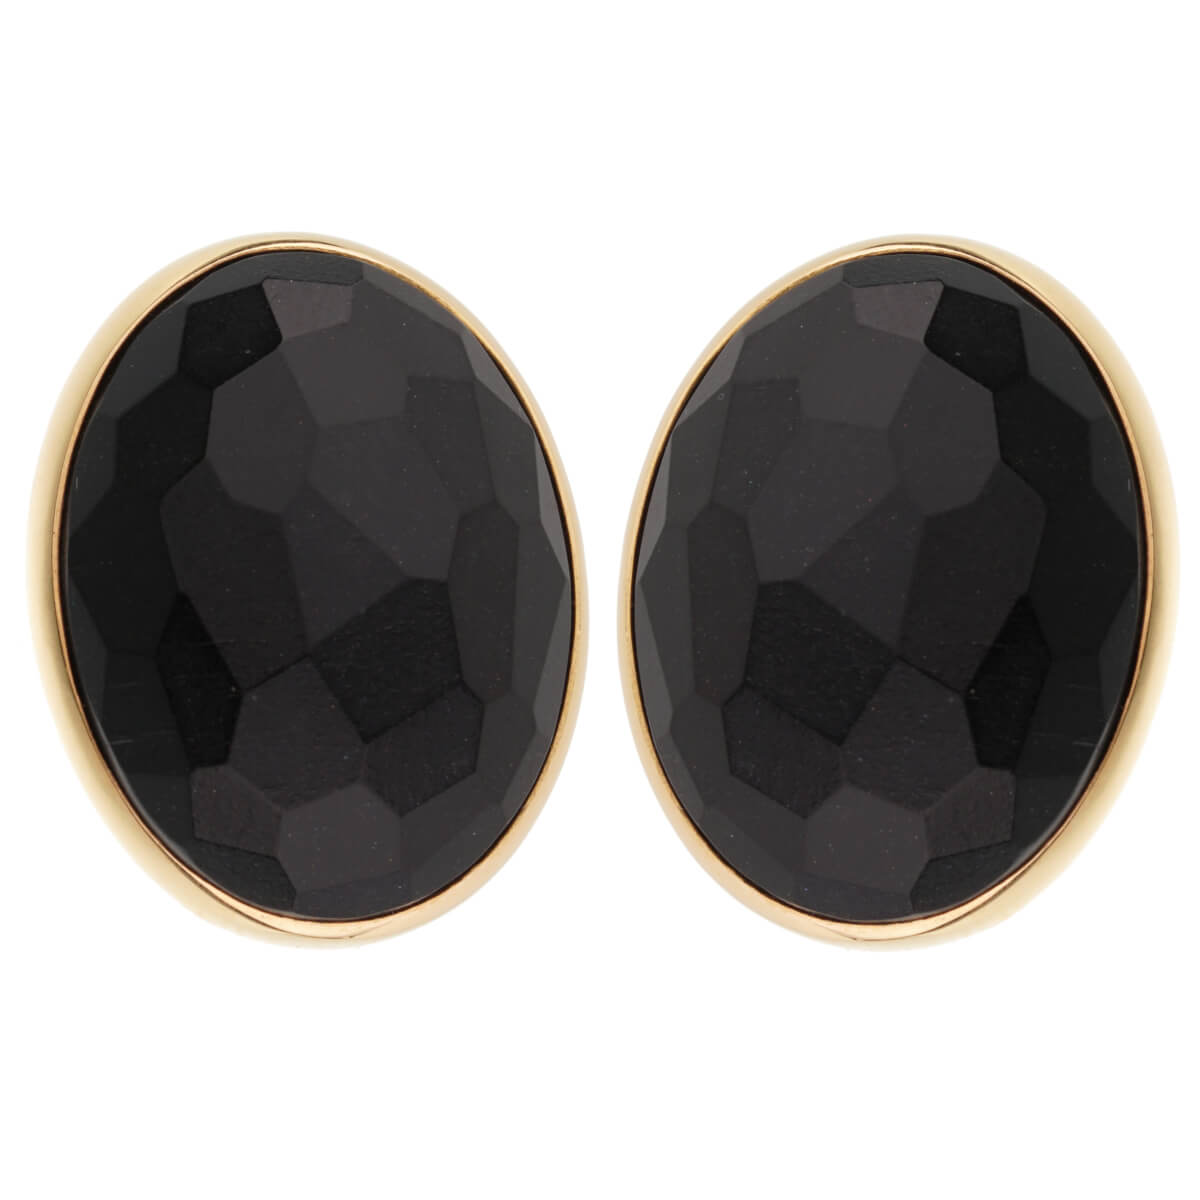 Pomellato 17.90ct Black Jet Rose Gold Earrings